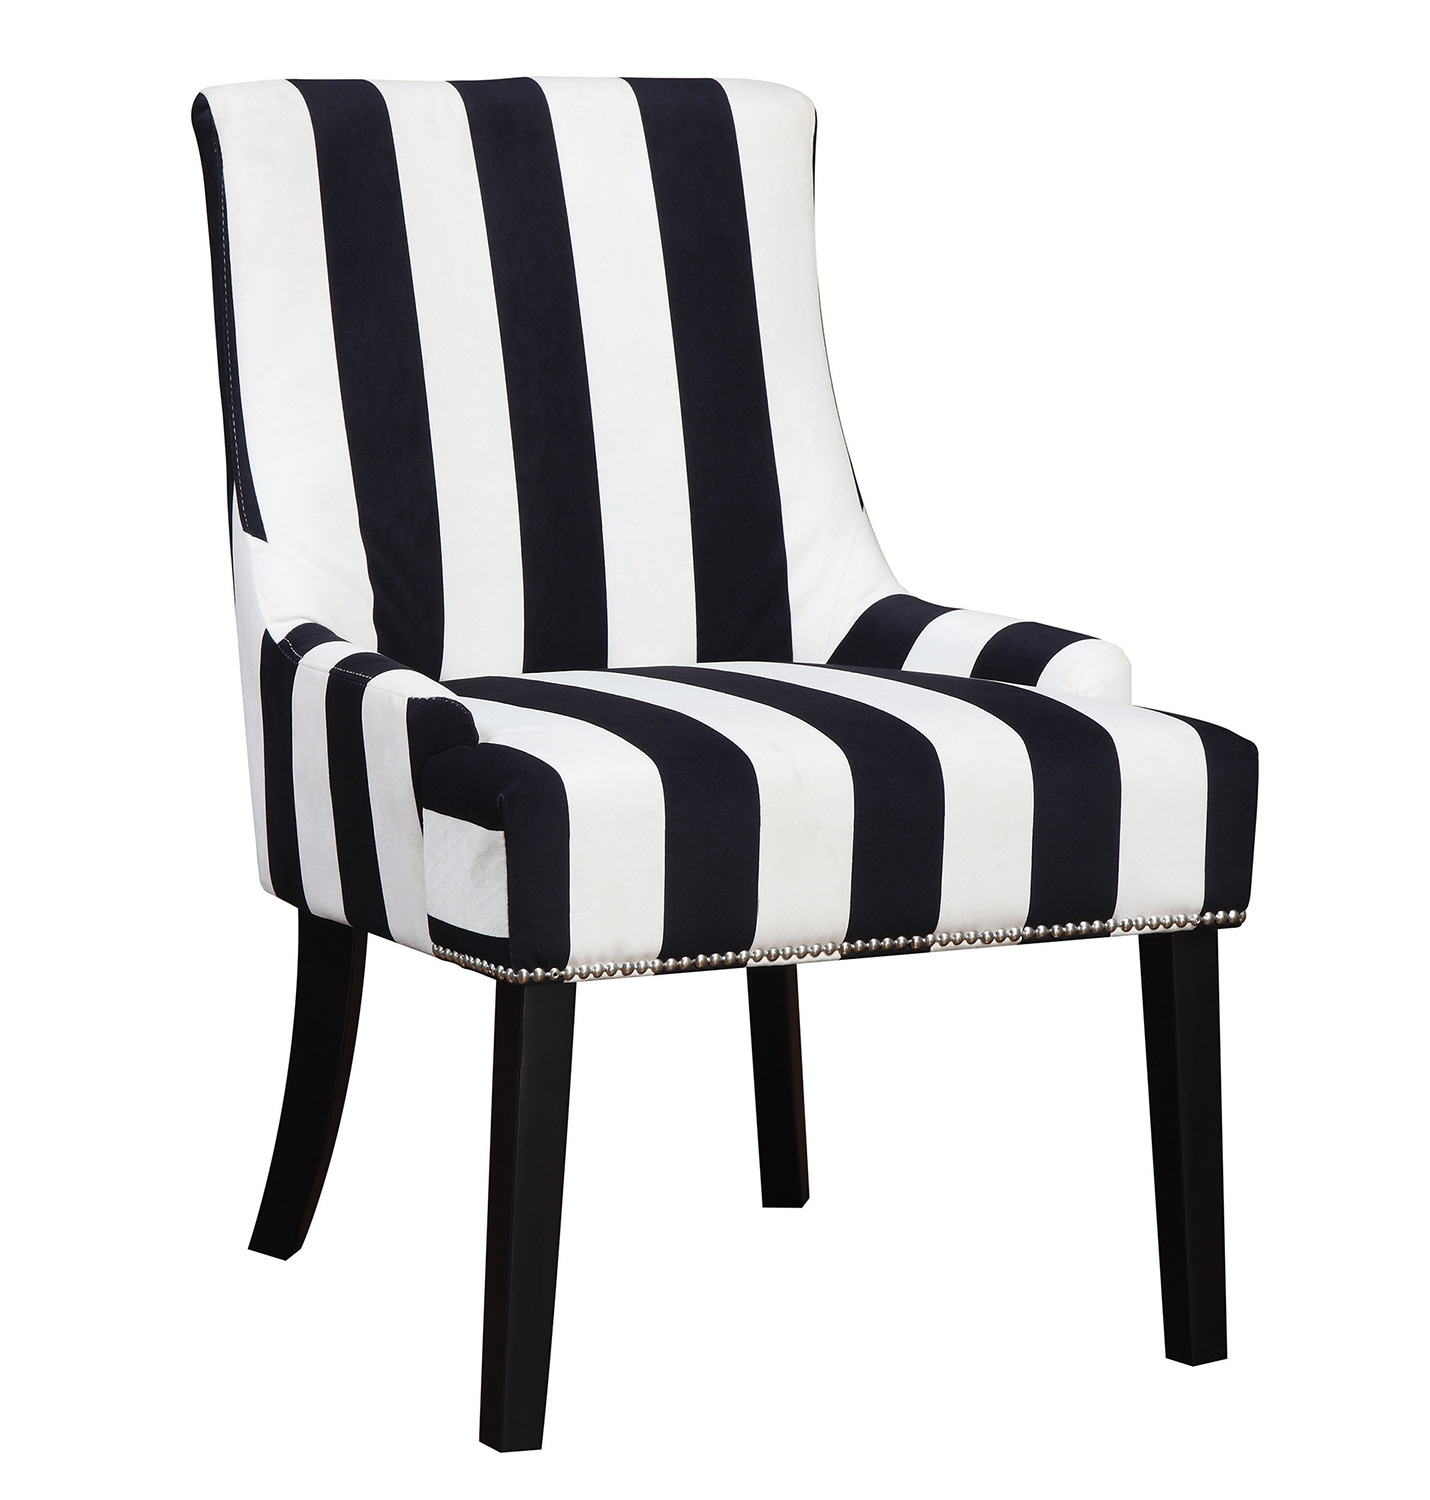 Coaster 902188 Accent Chair - Navy/White